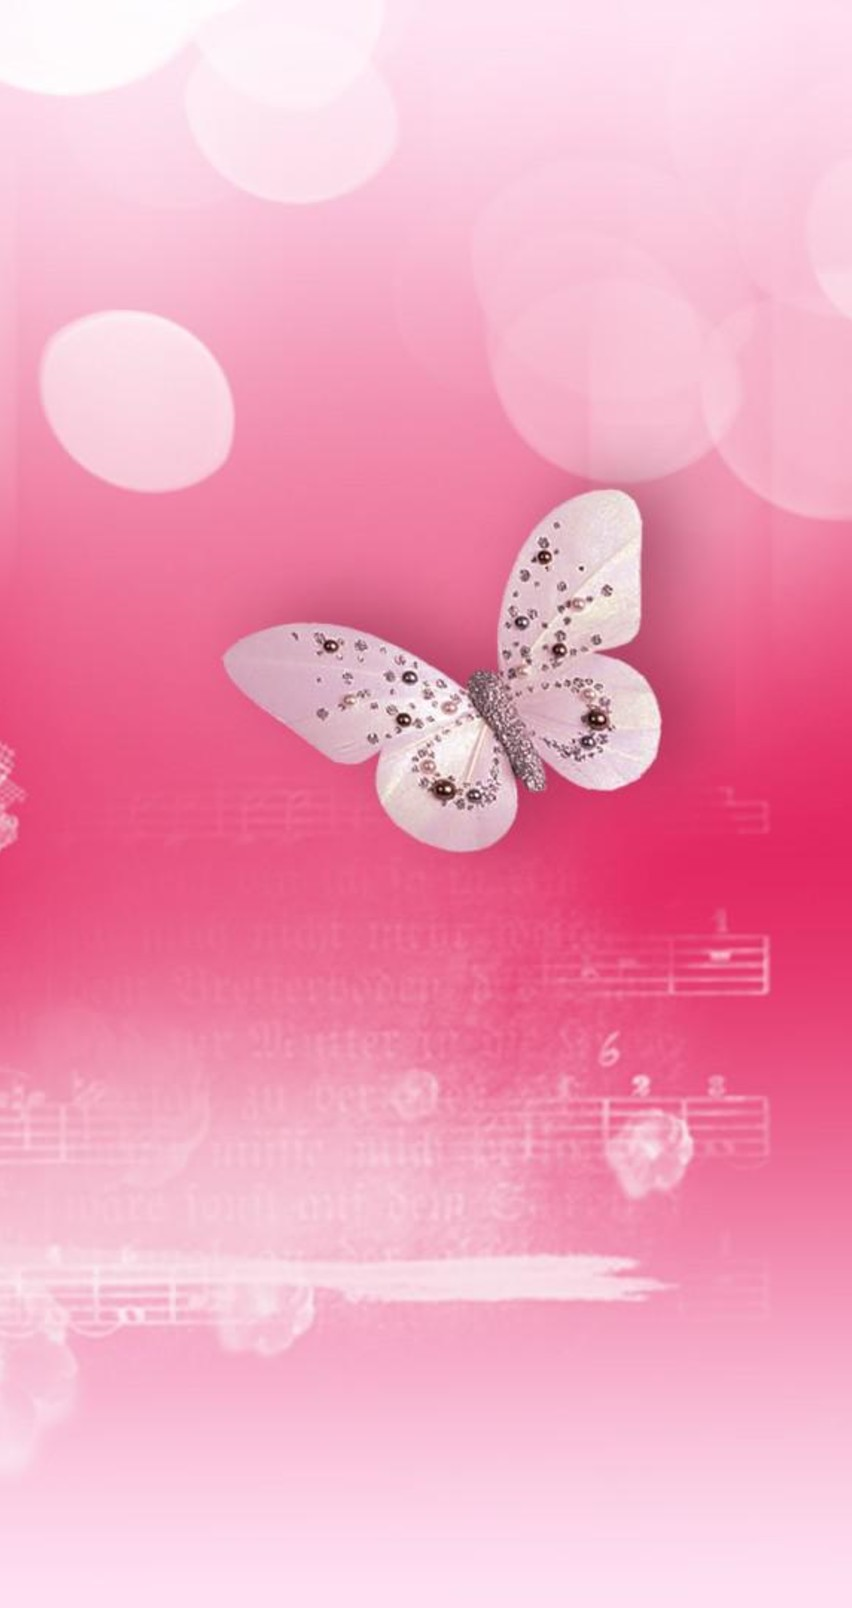 Butterfly dance on the music   HD pink wallpaper 852x1608